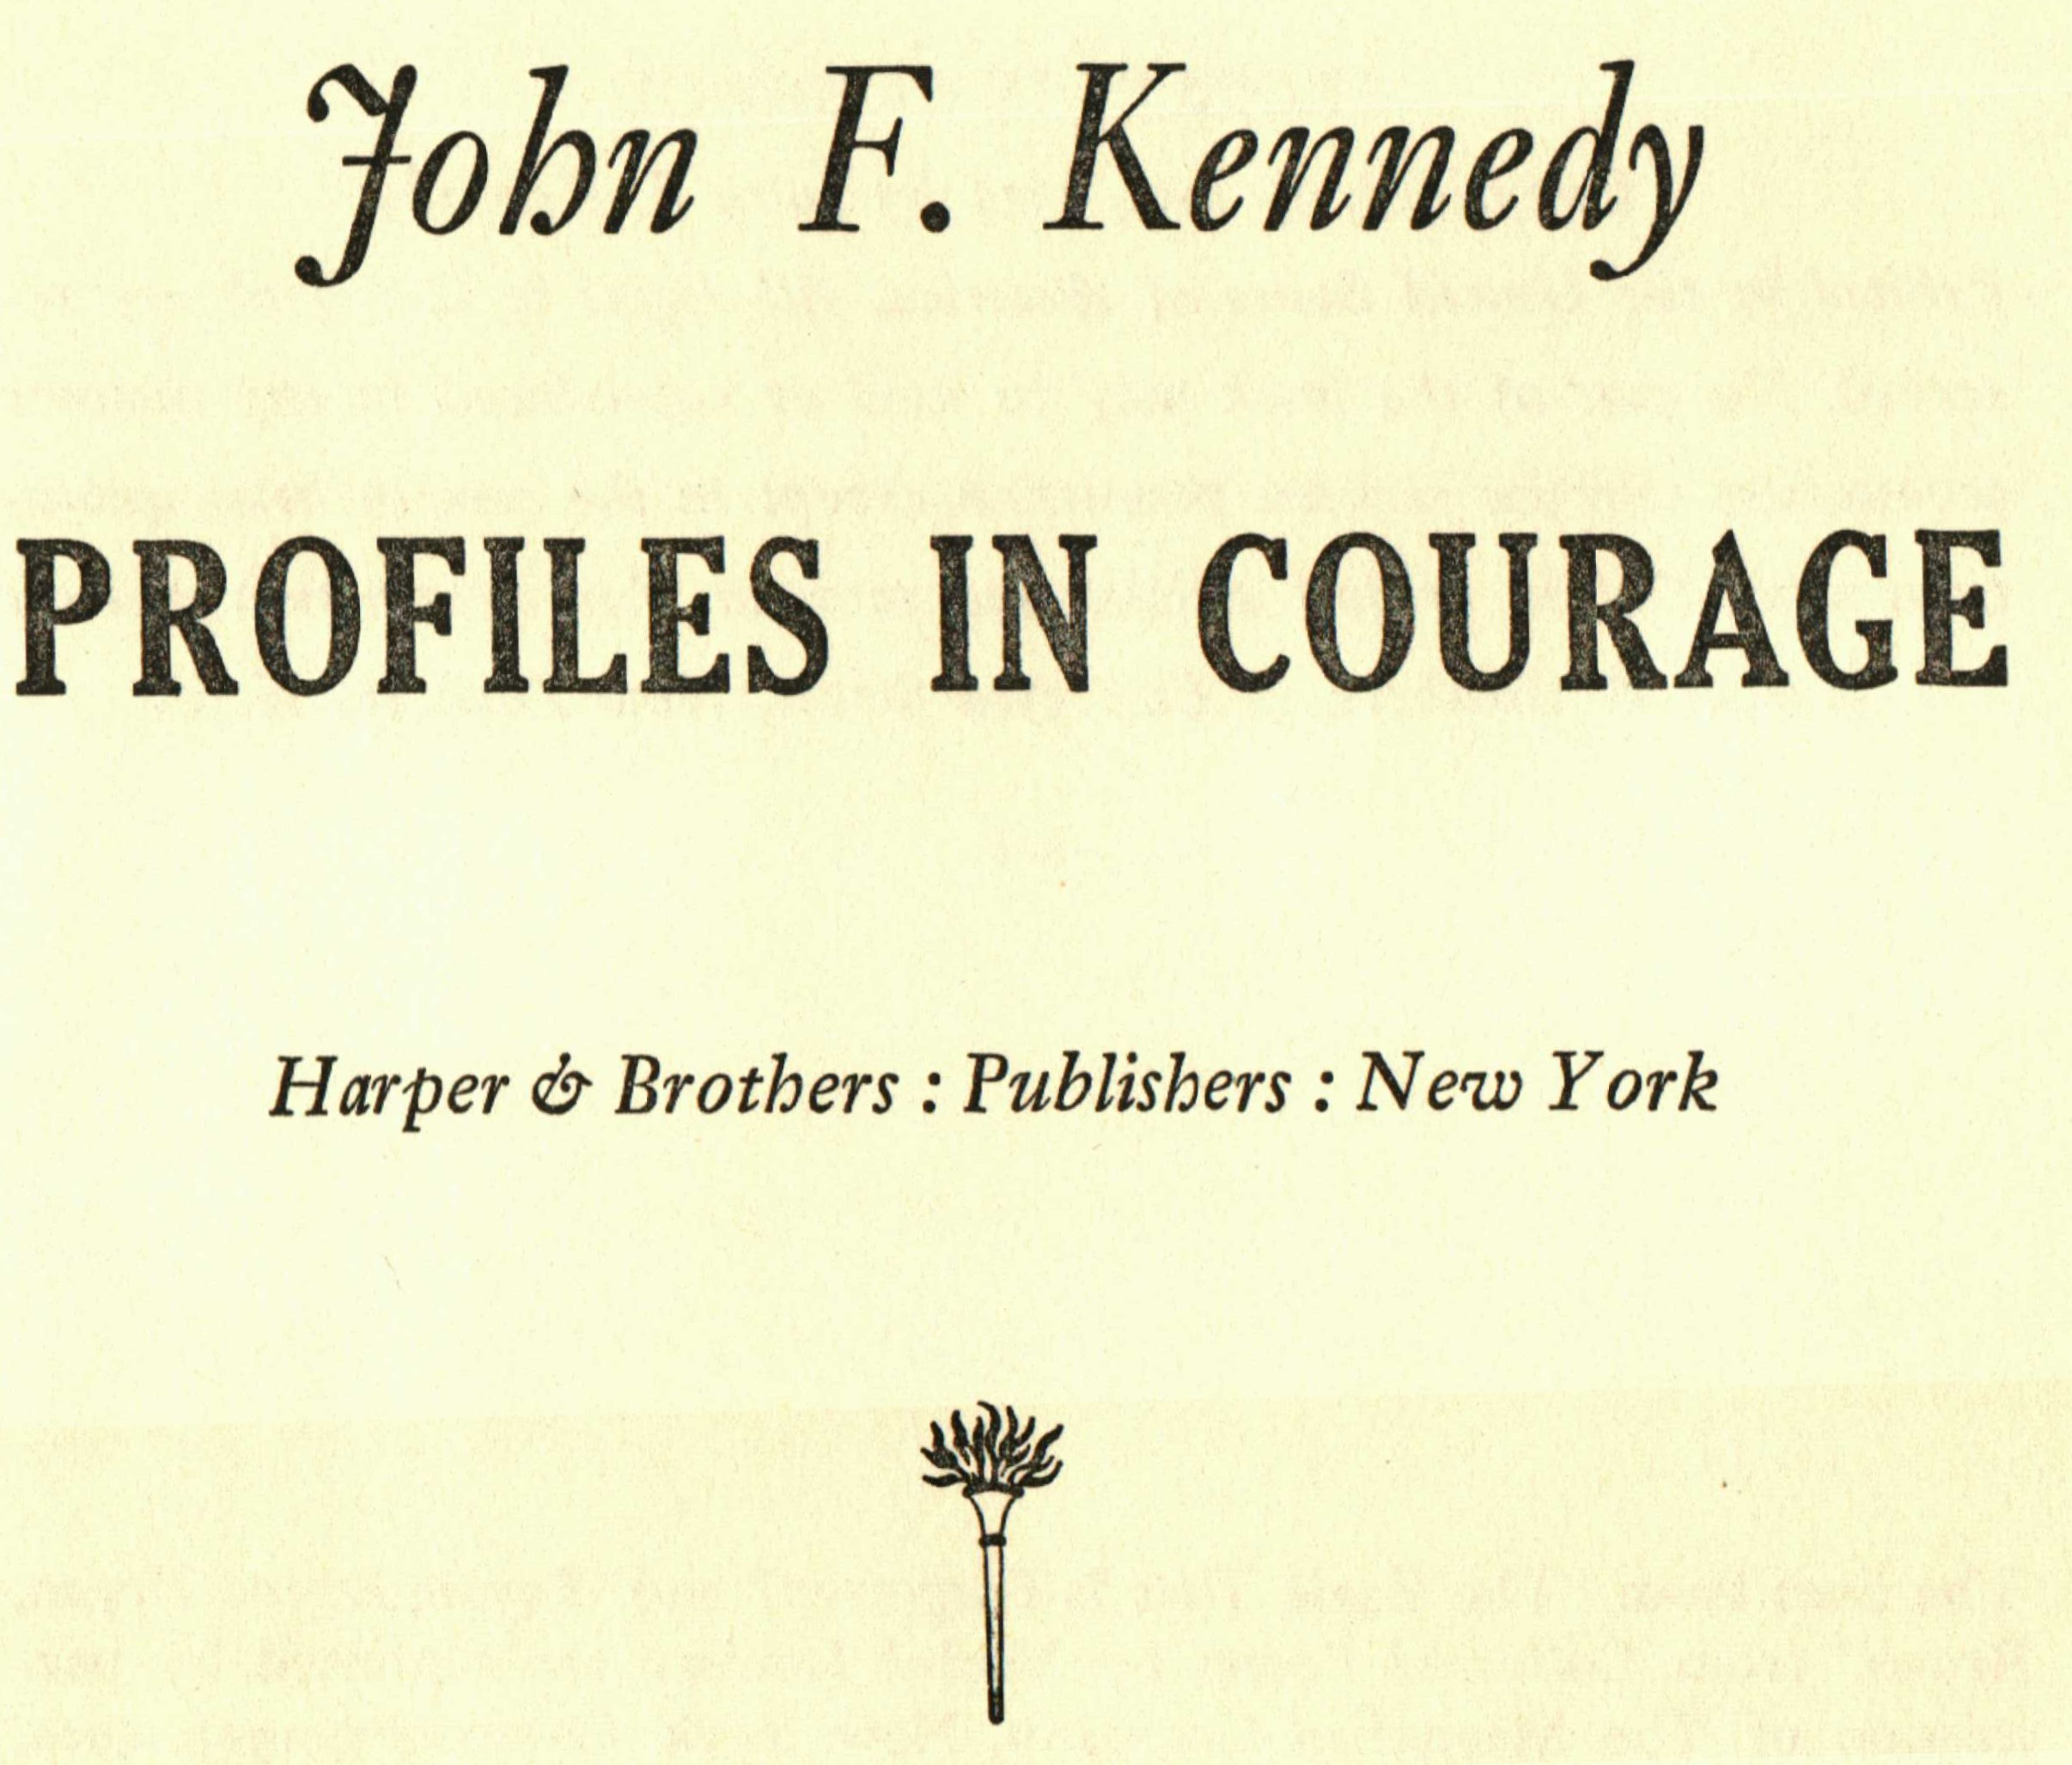 john f kennedy courage essay The contestduring john f kennedy profile in courage essay contest students are asked to create an original 1,000 word personal statement writing.